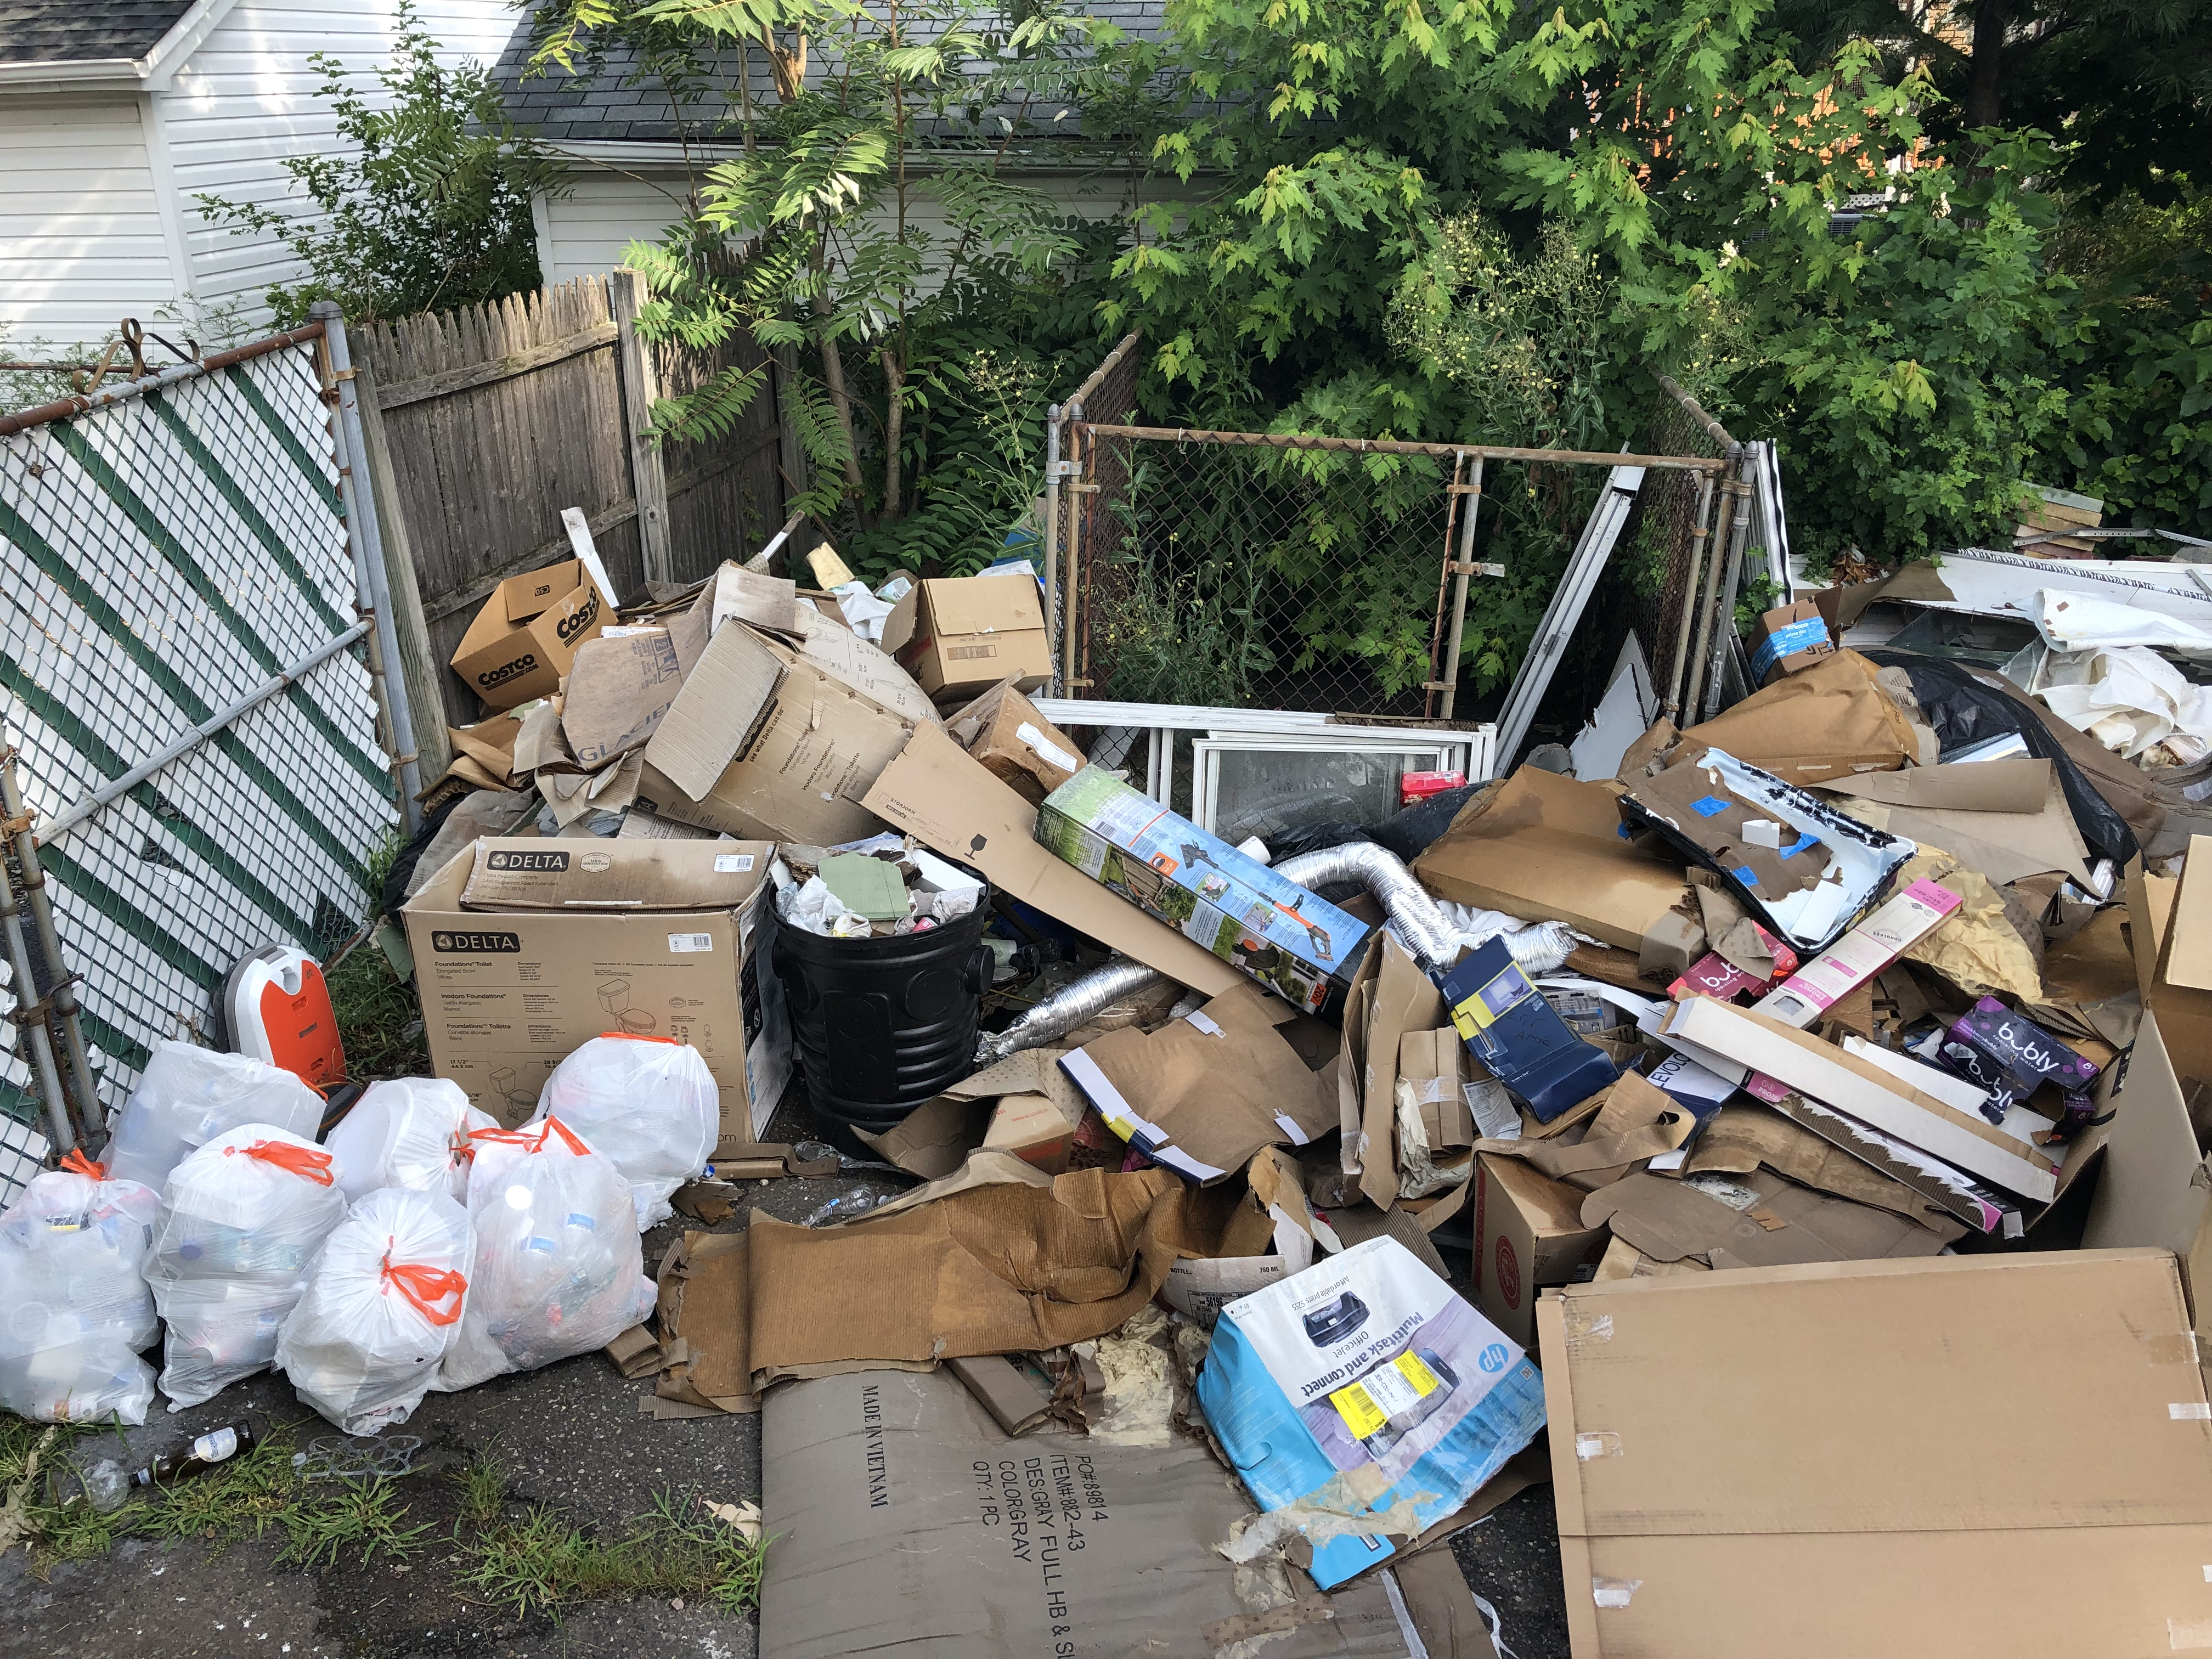 Junk Removal New Jersey Junk Removal Nj Costs